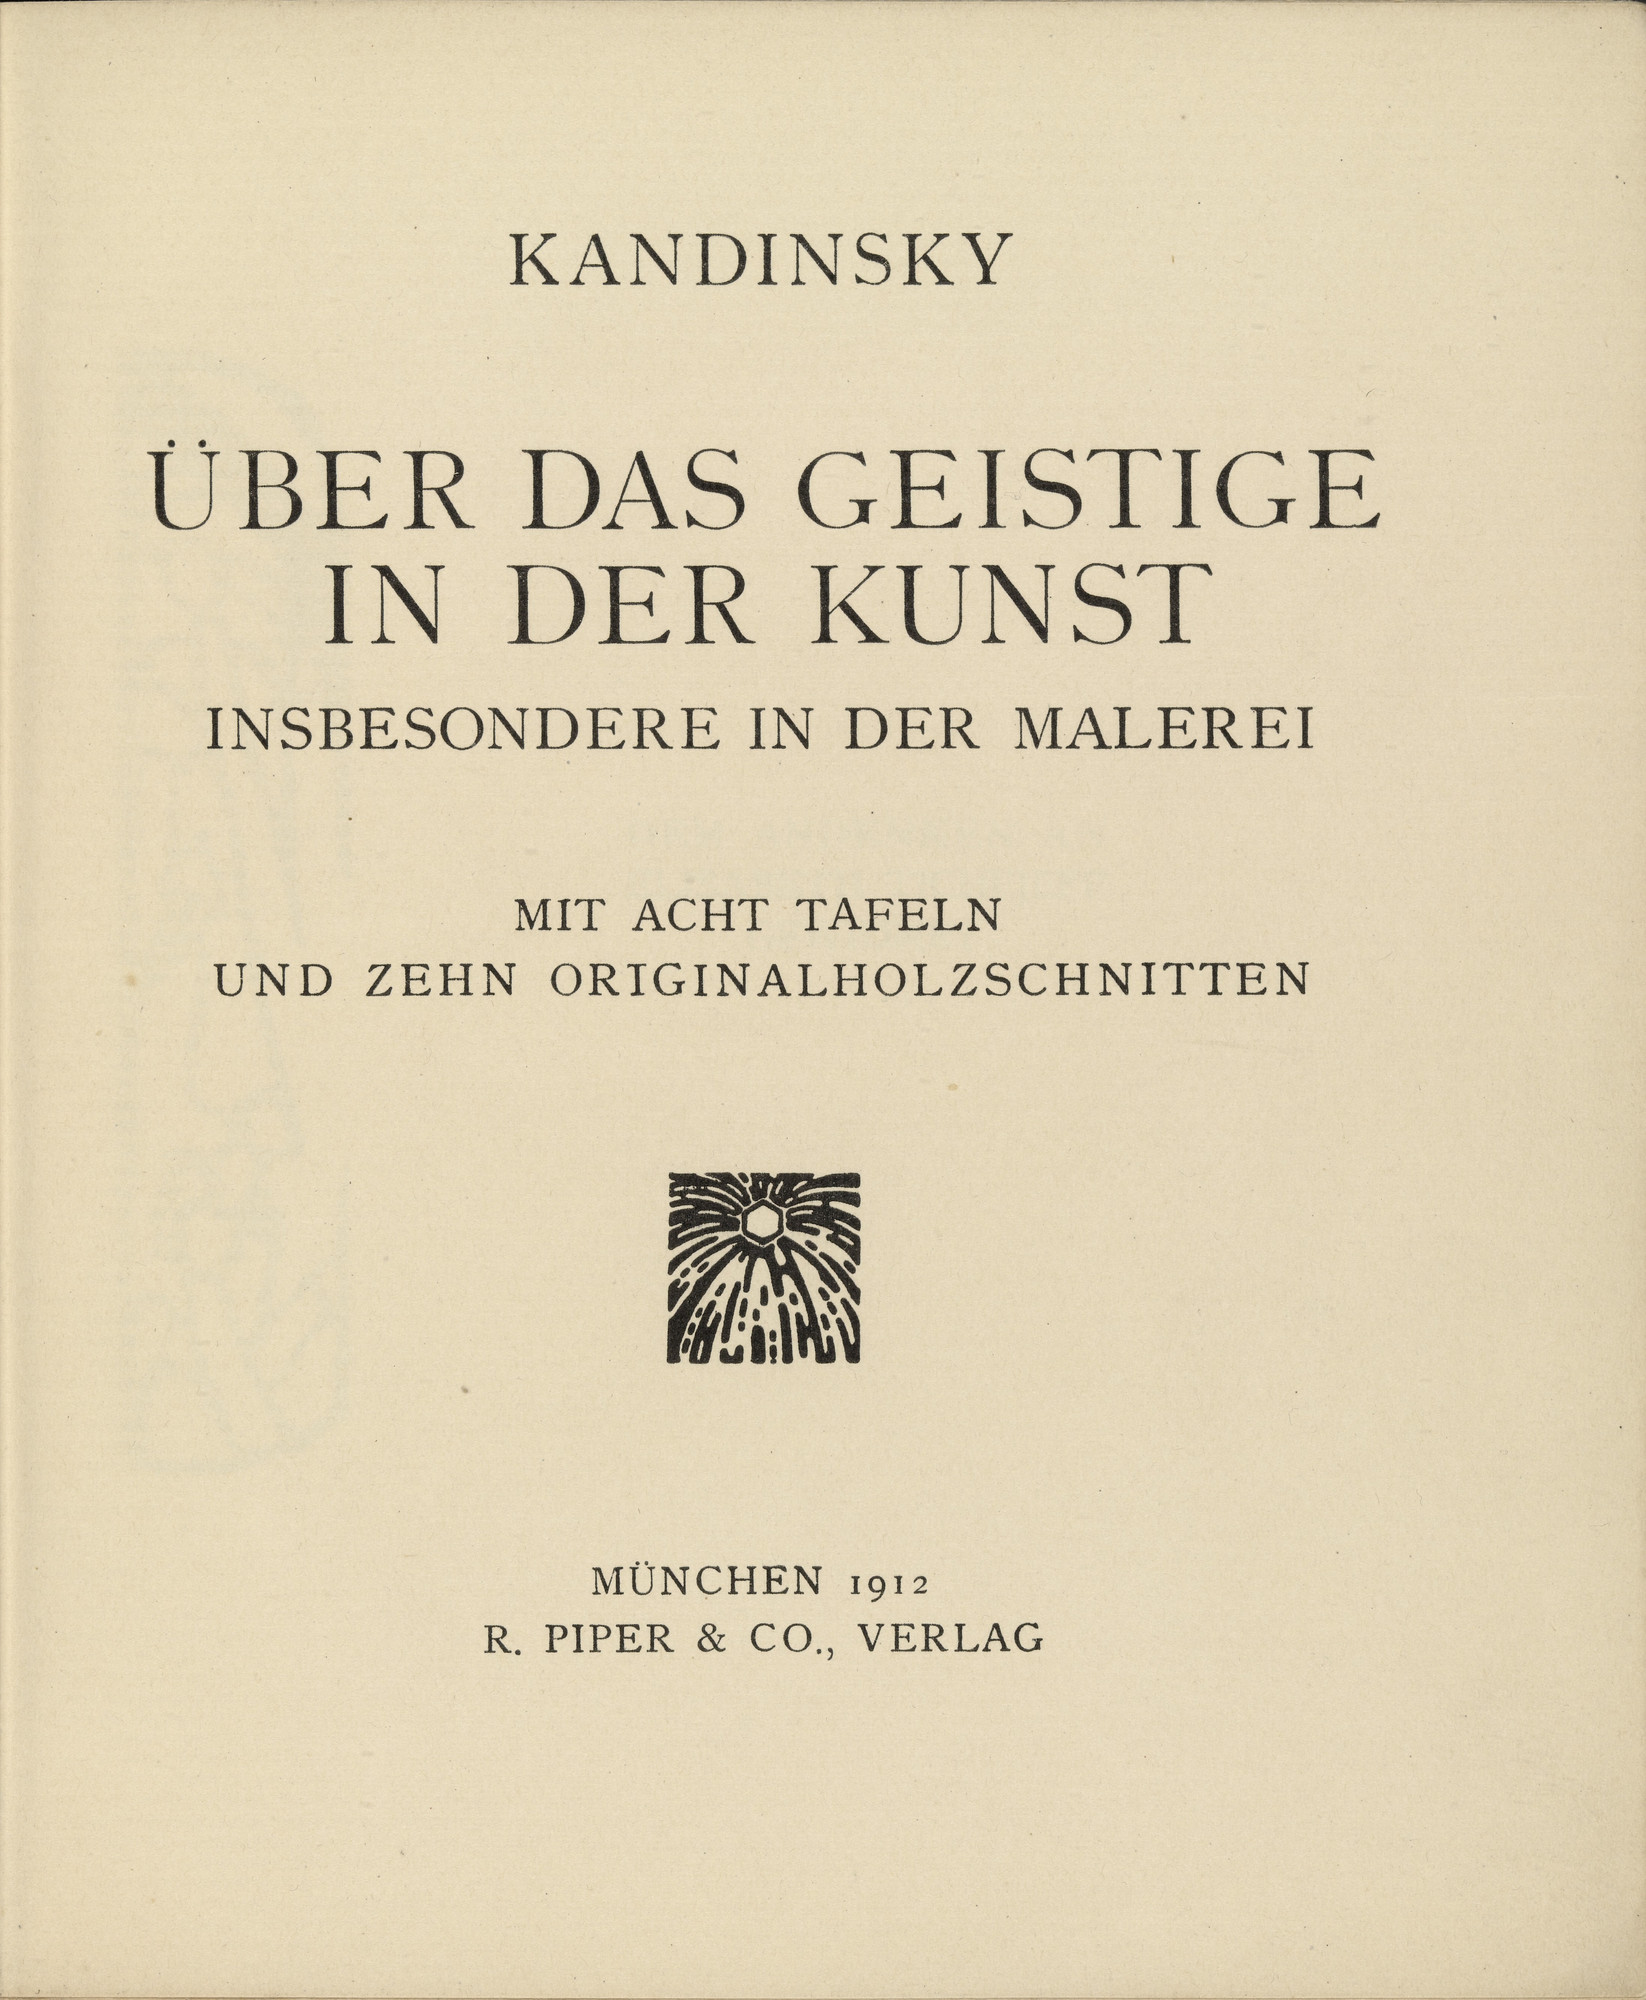 Vasily Kandinsky. Über das Geistige in der Kunst: Insbesondere in der Malerei (Concerning the Spiritual in Art: Especially in Painting). 1911